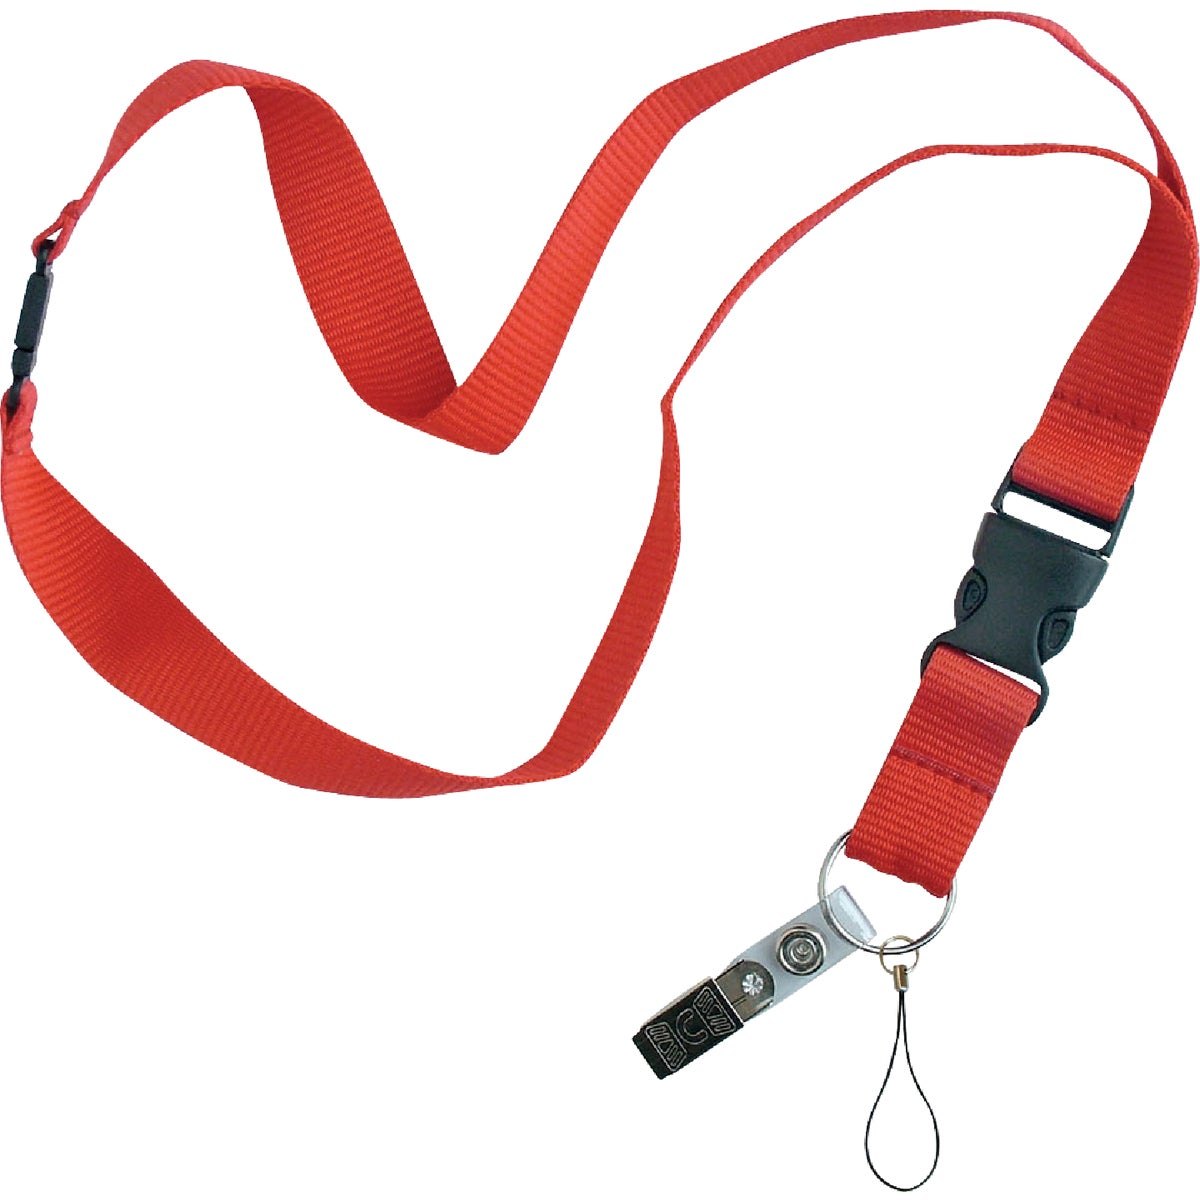 AST COLORS FLAT LANYARD - 64101 by Lucky Line Prod Inc